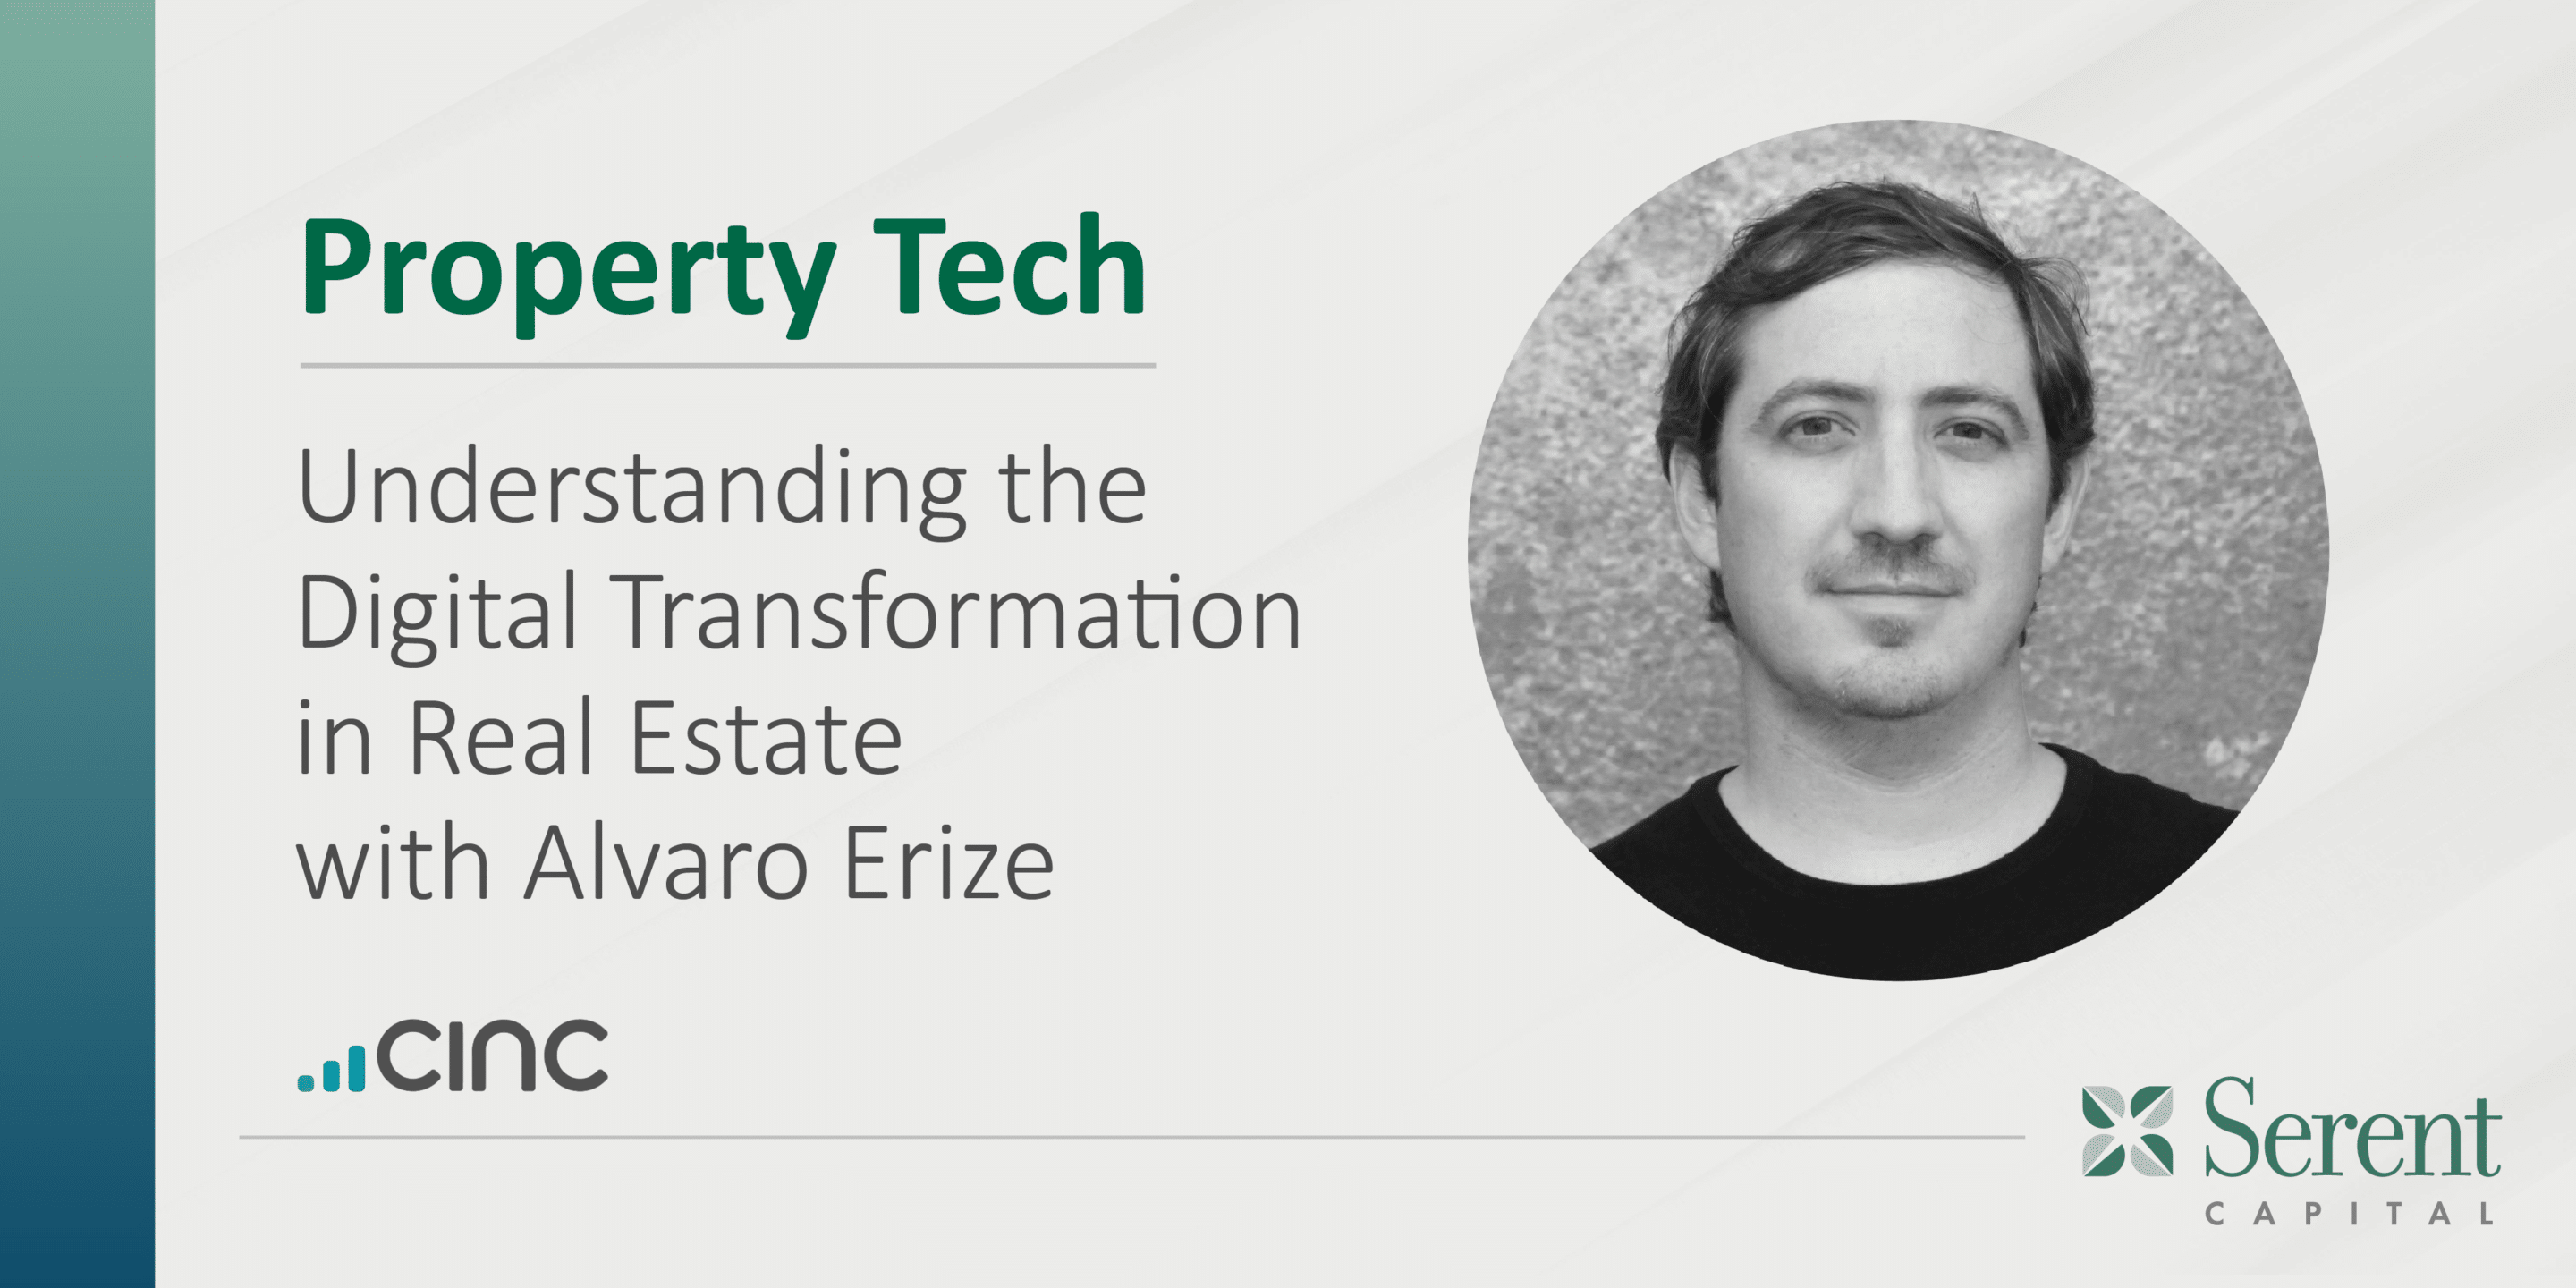 Property Tech: Understanding the Digital Transformation in Real Estate